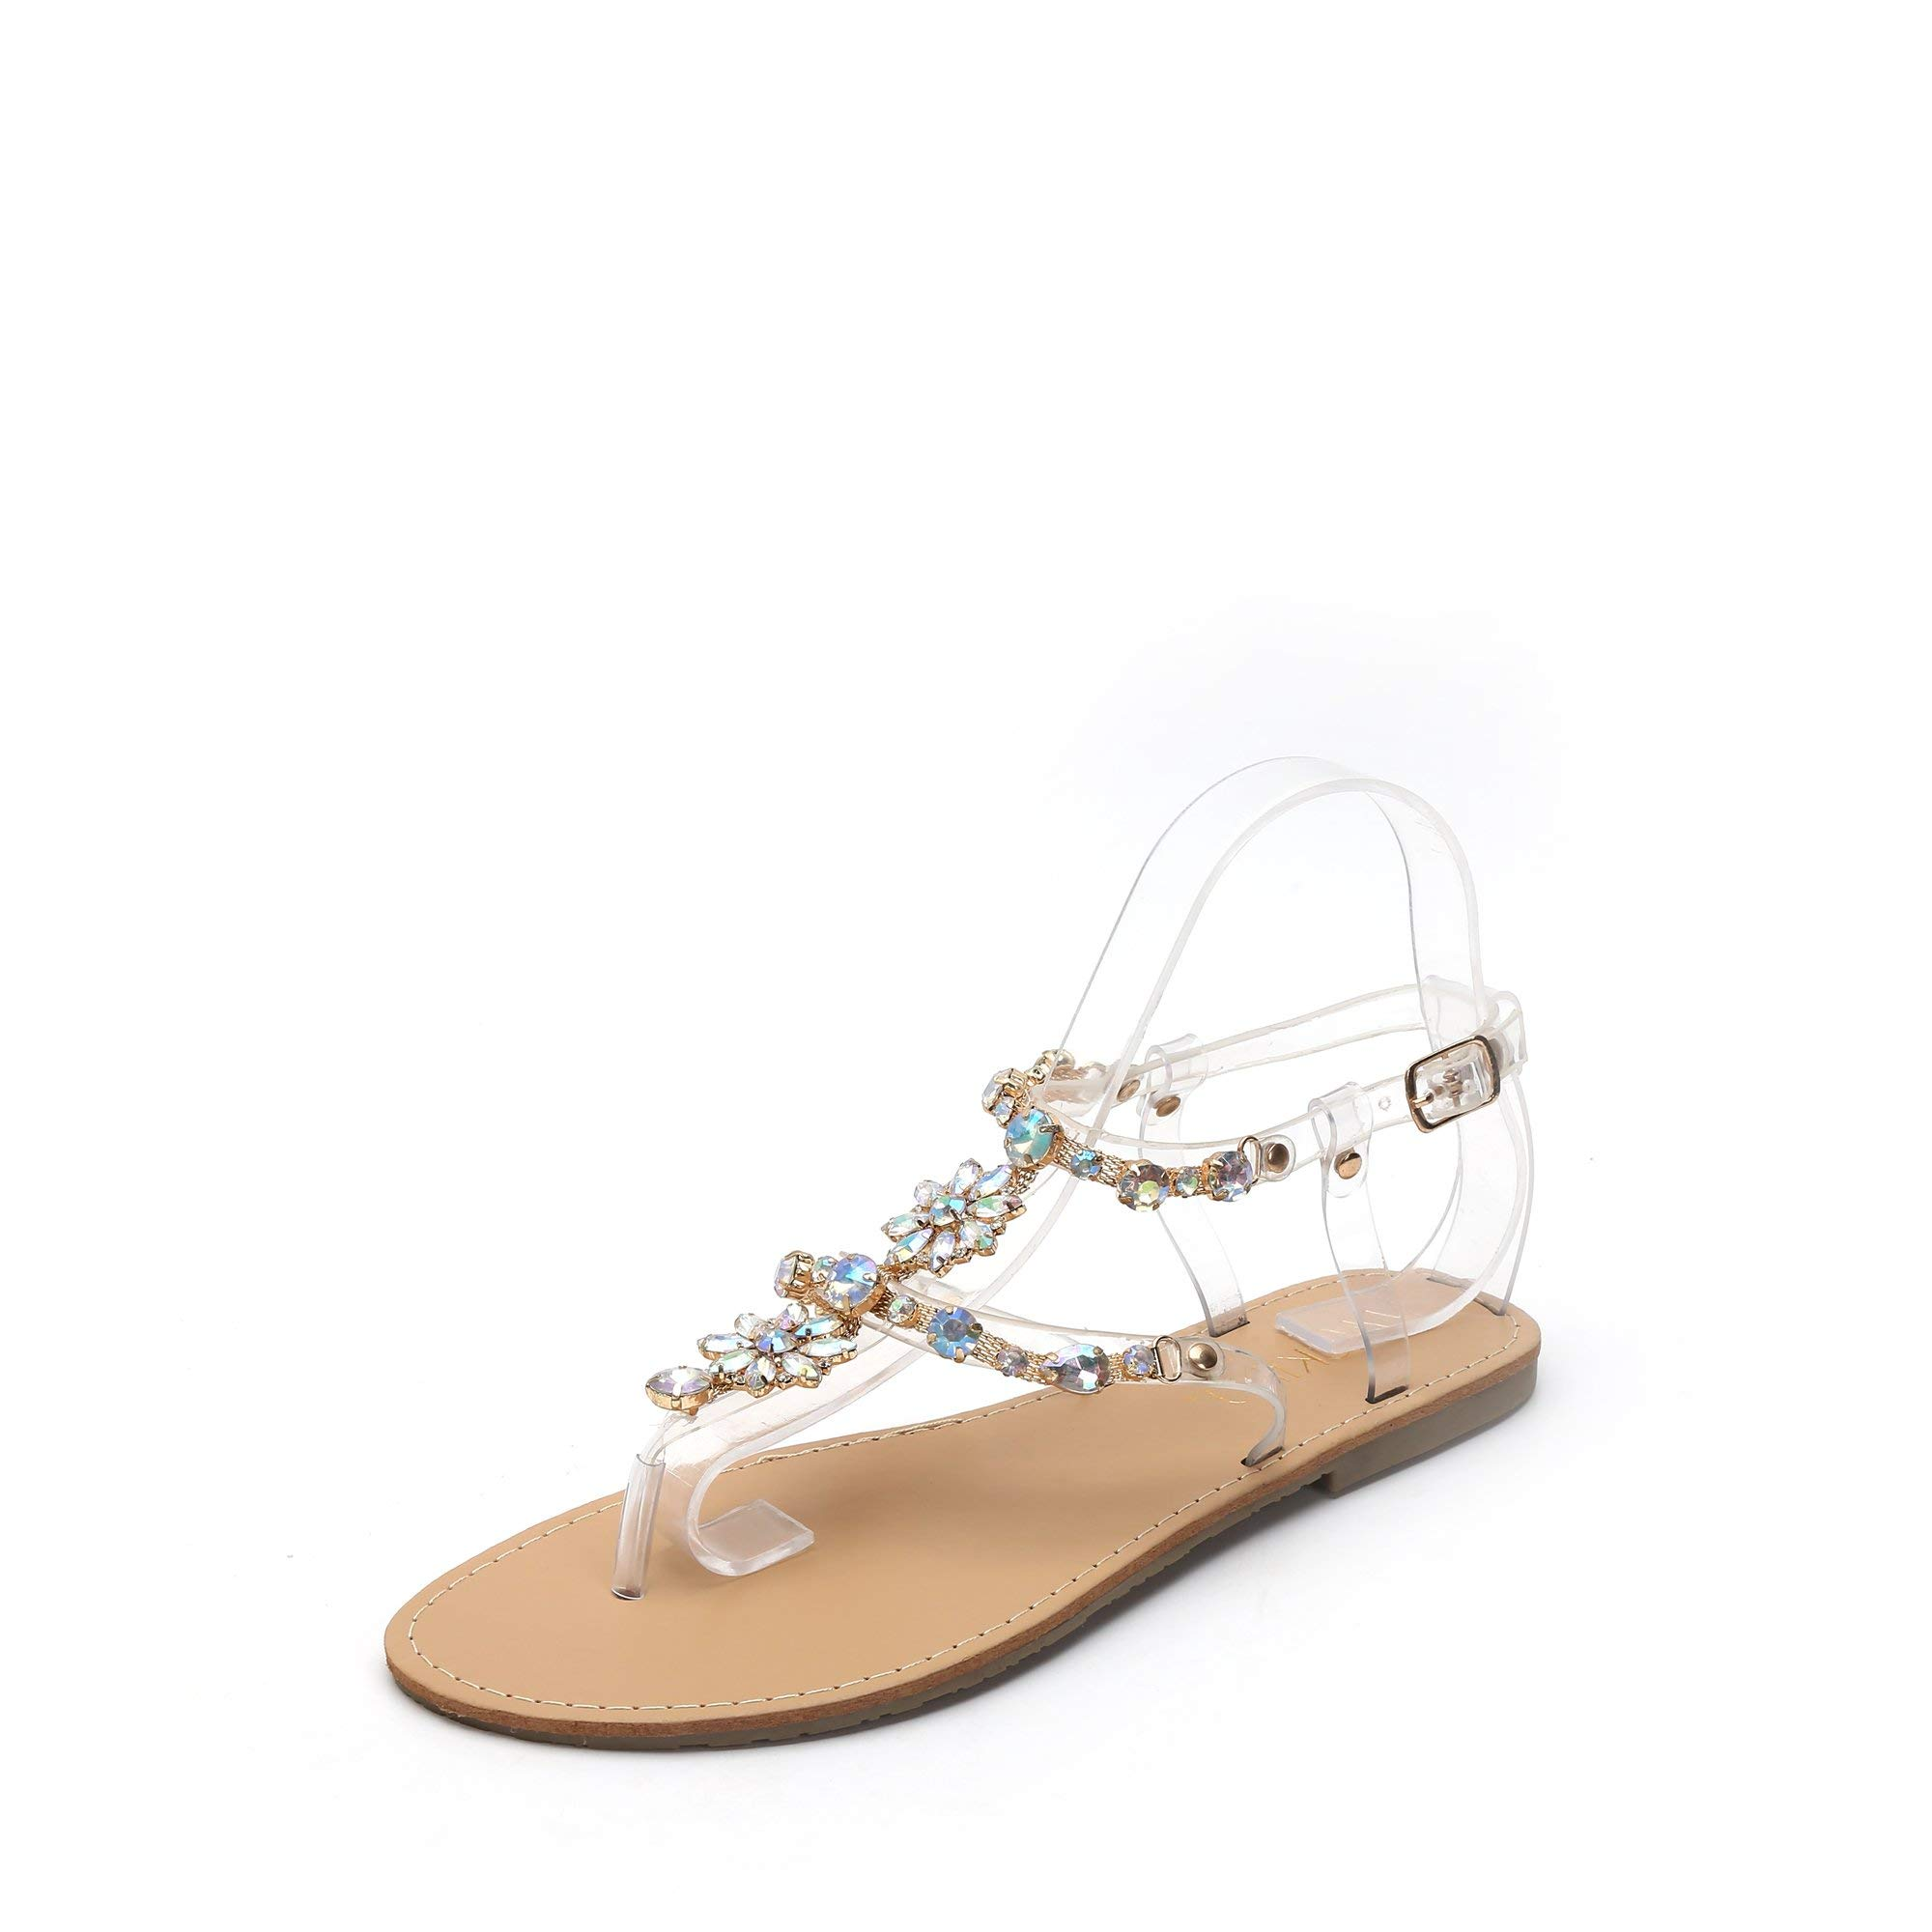 MACKIN J 370-1 Women's Rhinestone Sandals Thong Ankle Strap Summer Flat Sandals